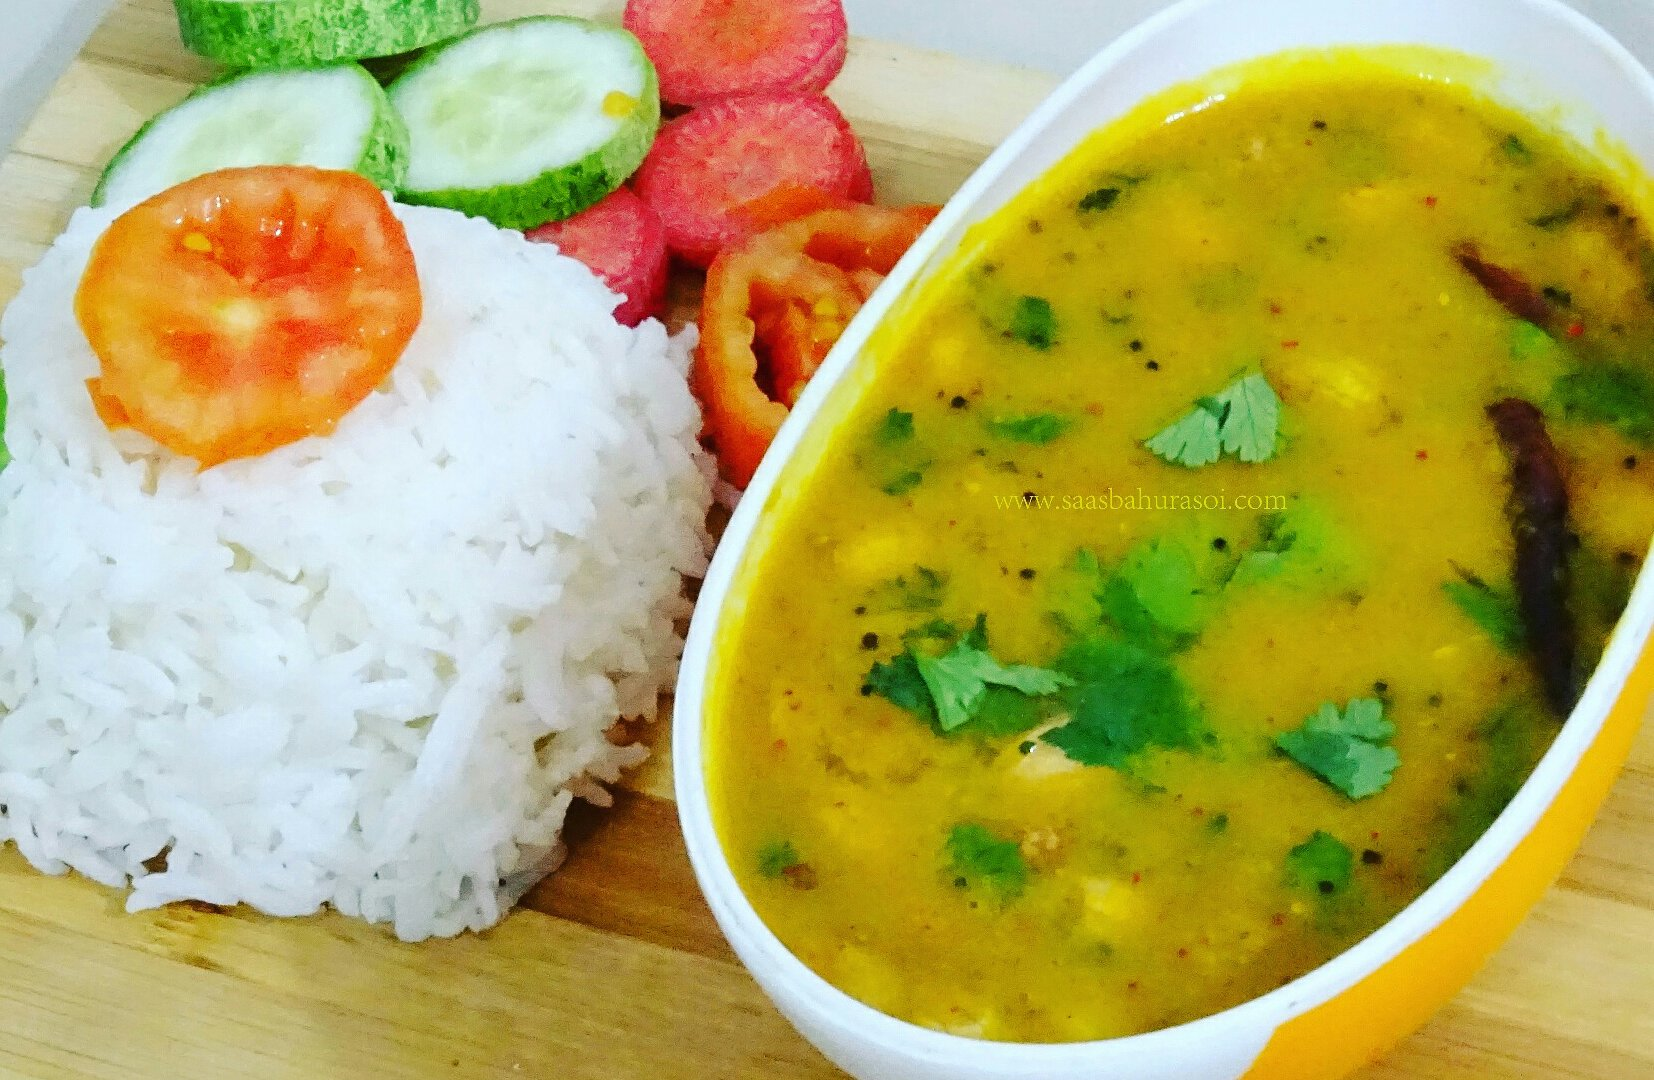 Gujarati style khatti meethi dal recipe indian food gujarati gujarati style khatti meethi dal recipe indian food gujarati recipes forumfinder